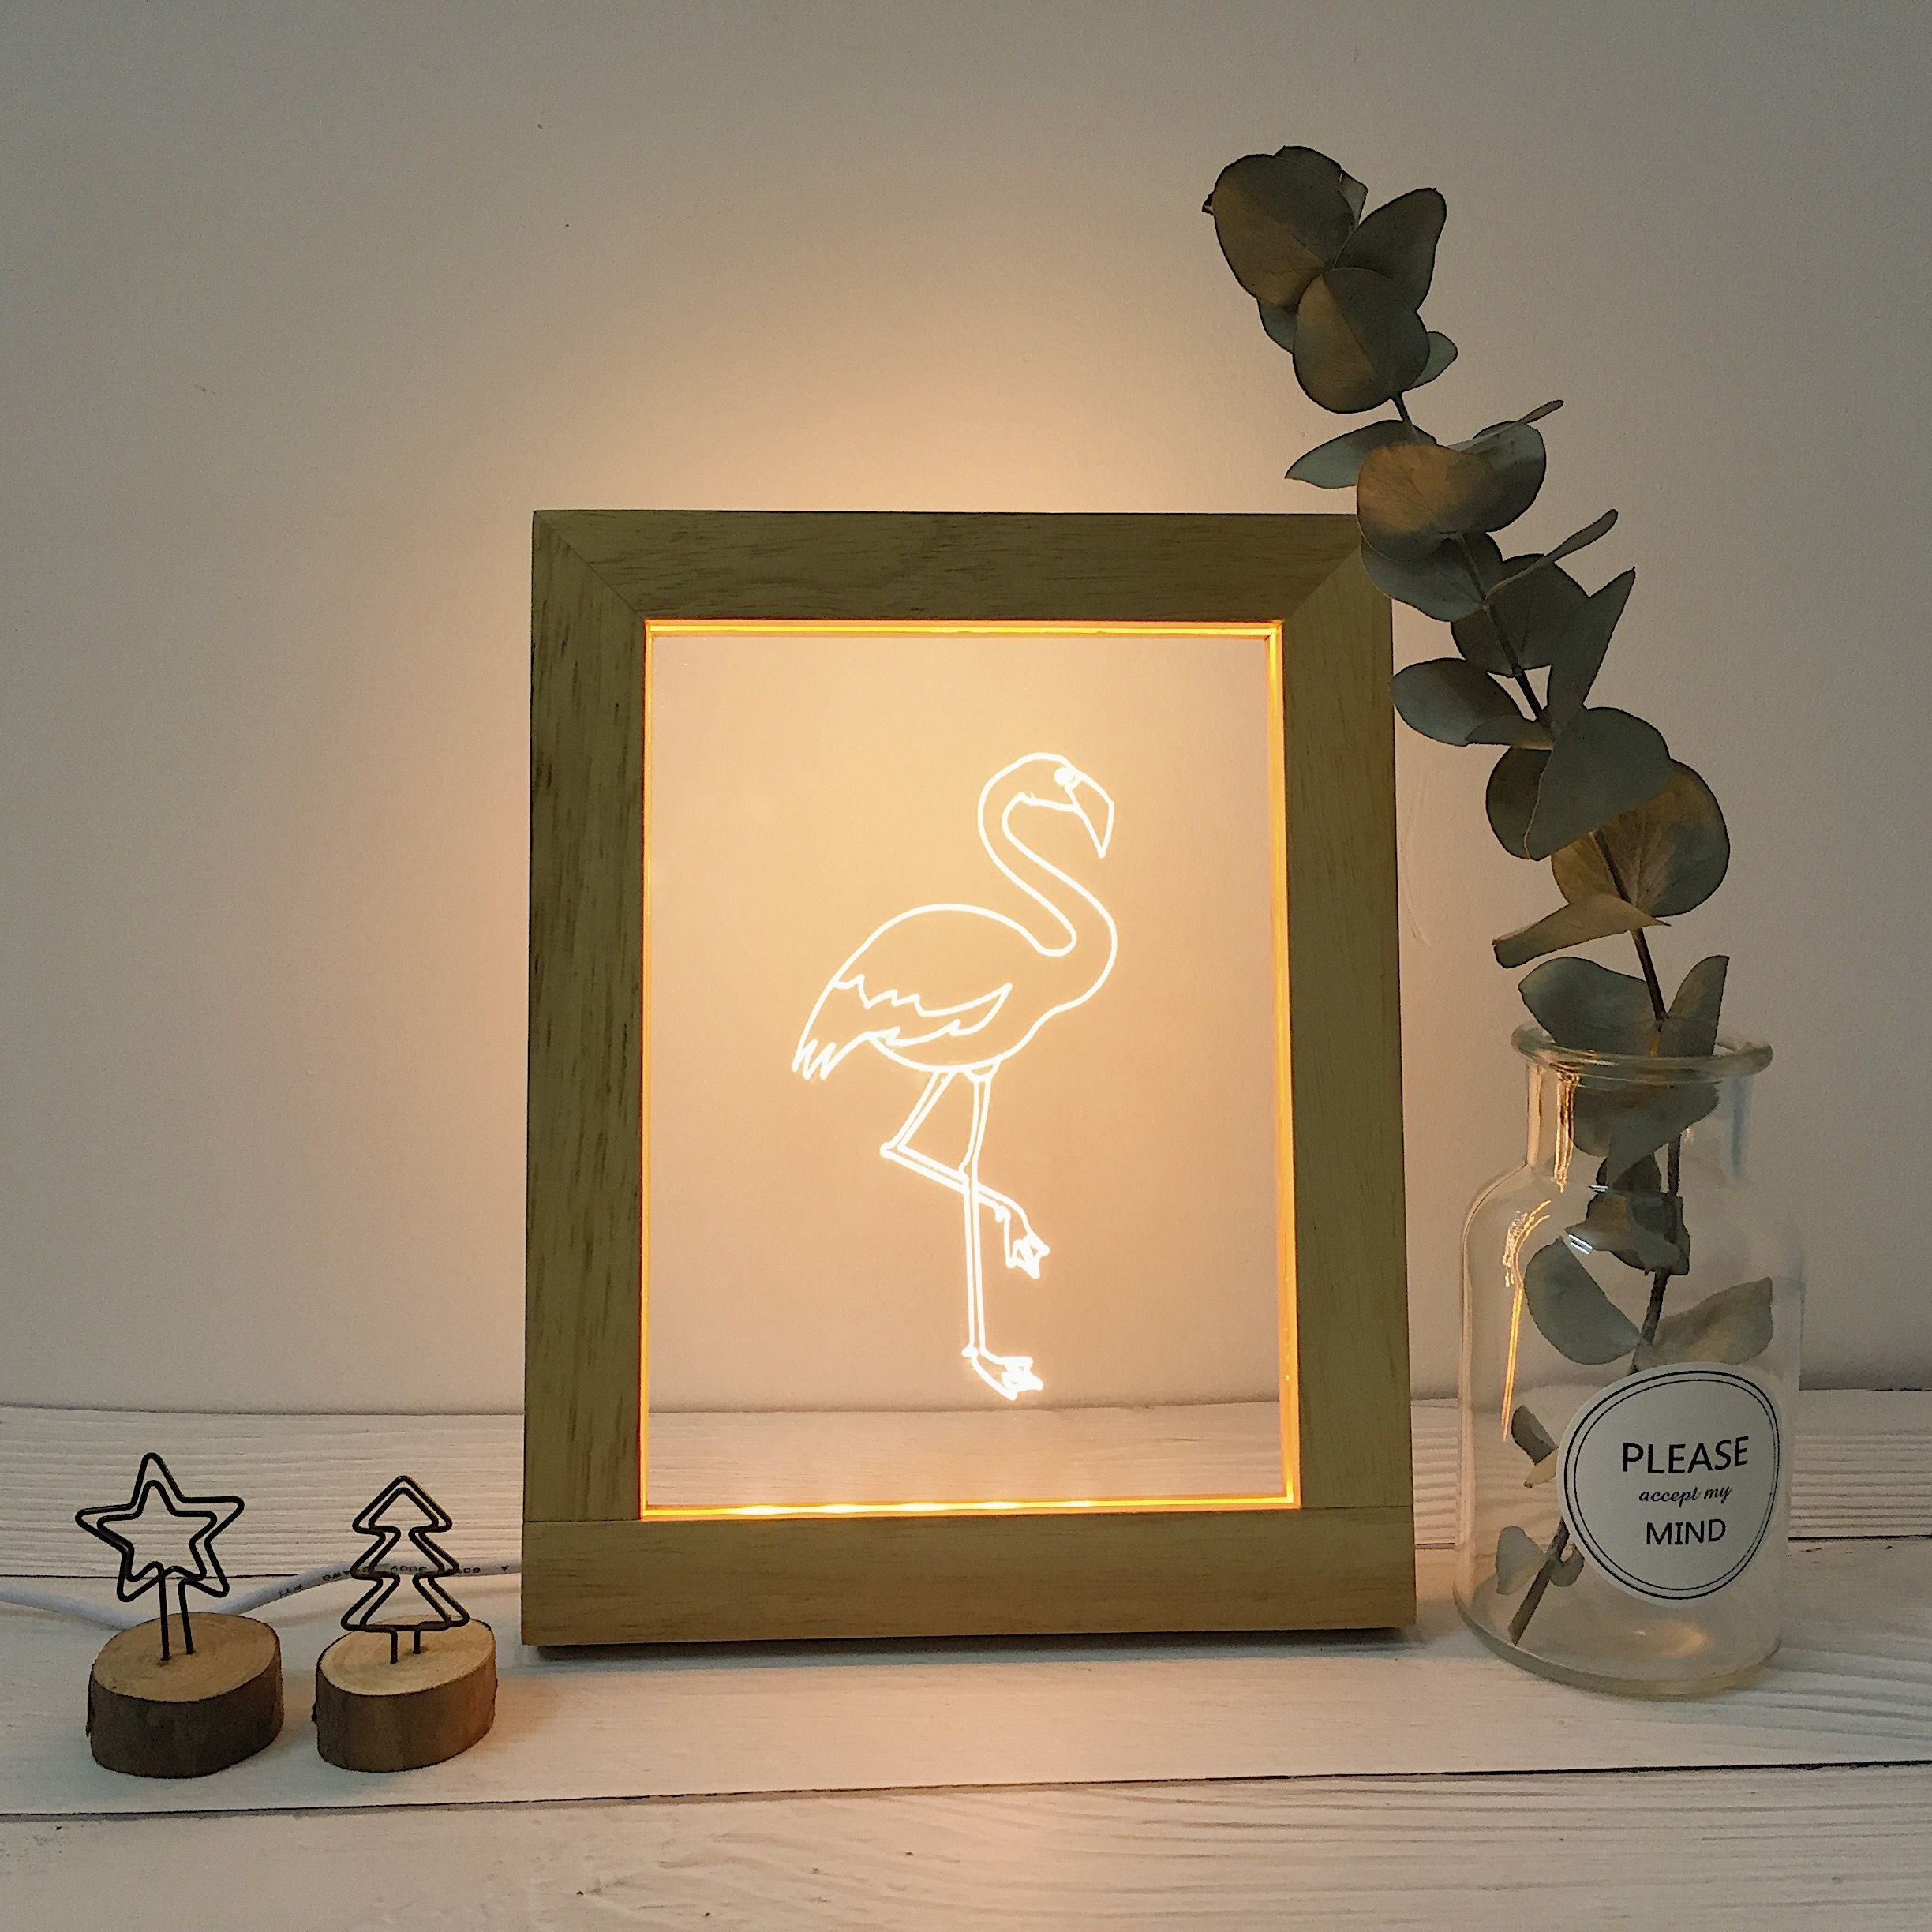 Wood Frame Night Lights, Fortune Cat Crane Panda Desk Lamp for Bedroom Living Room, Romantic Art Night Light for Kids and Adults, Decorate Holiday Party Atmosphere, 7.3x9.3x0.8 inches (Crane)